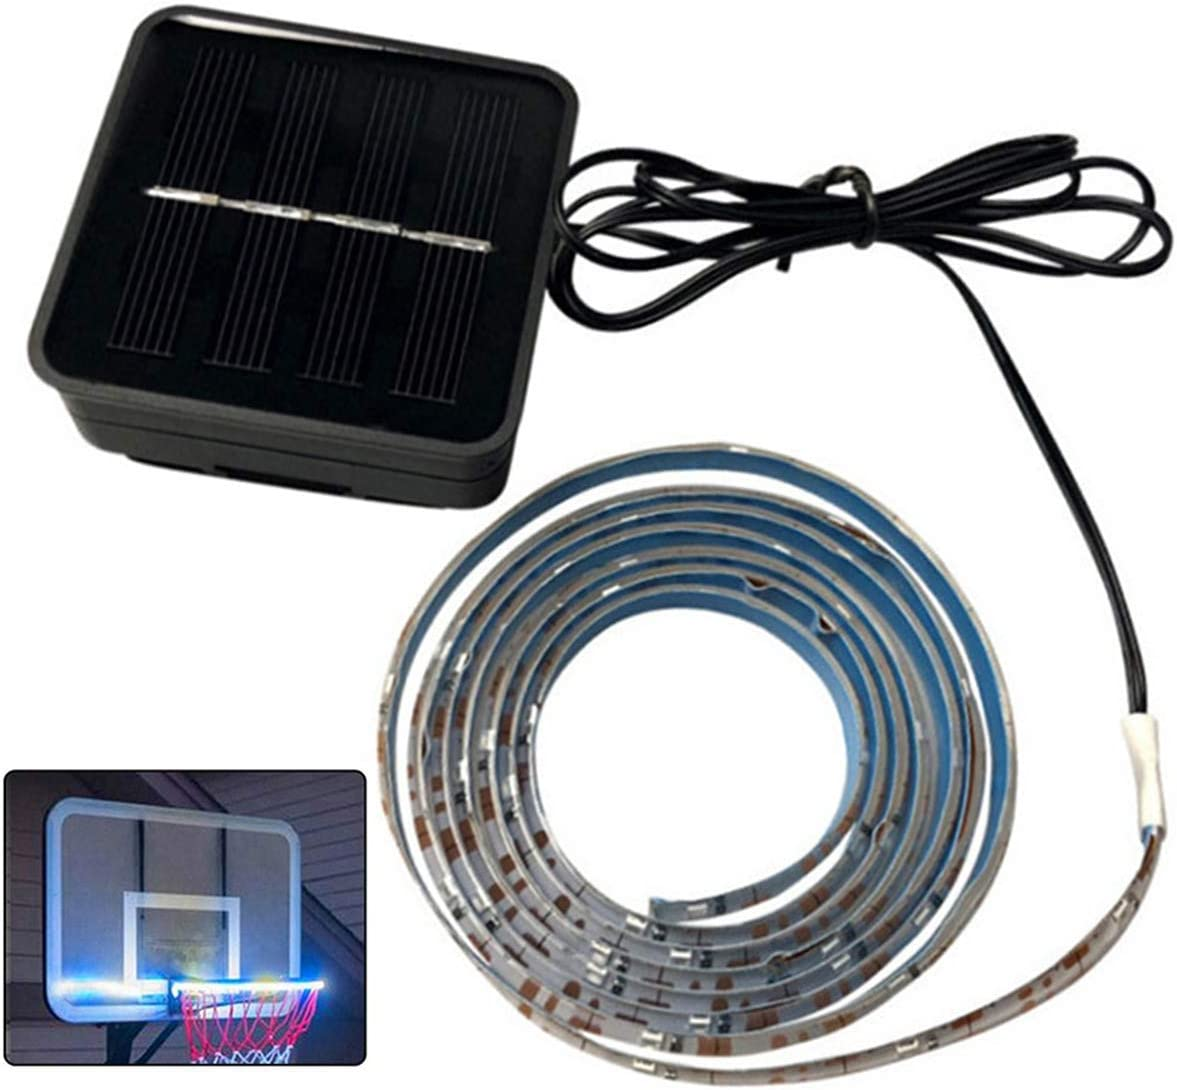 SunshineFace Basketball Hoop Light Bask in- Dark Waterproof- We OFFer at cheap prices Seasonal Wrap Introduction